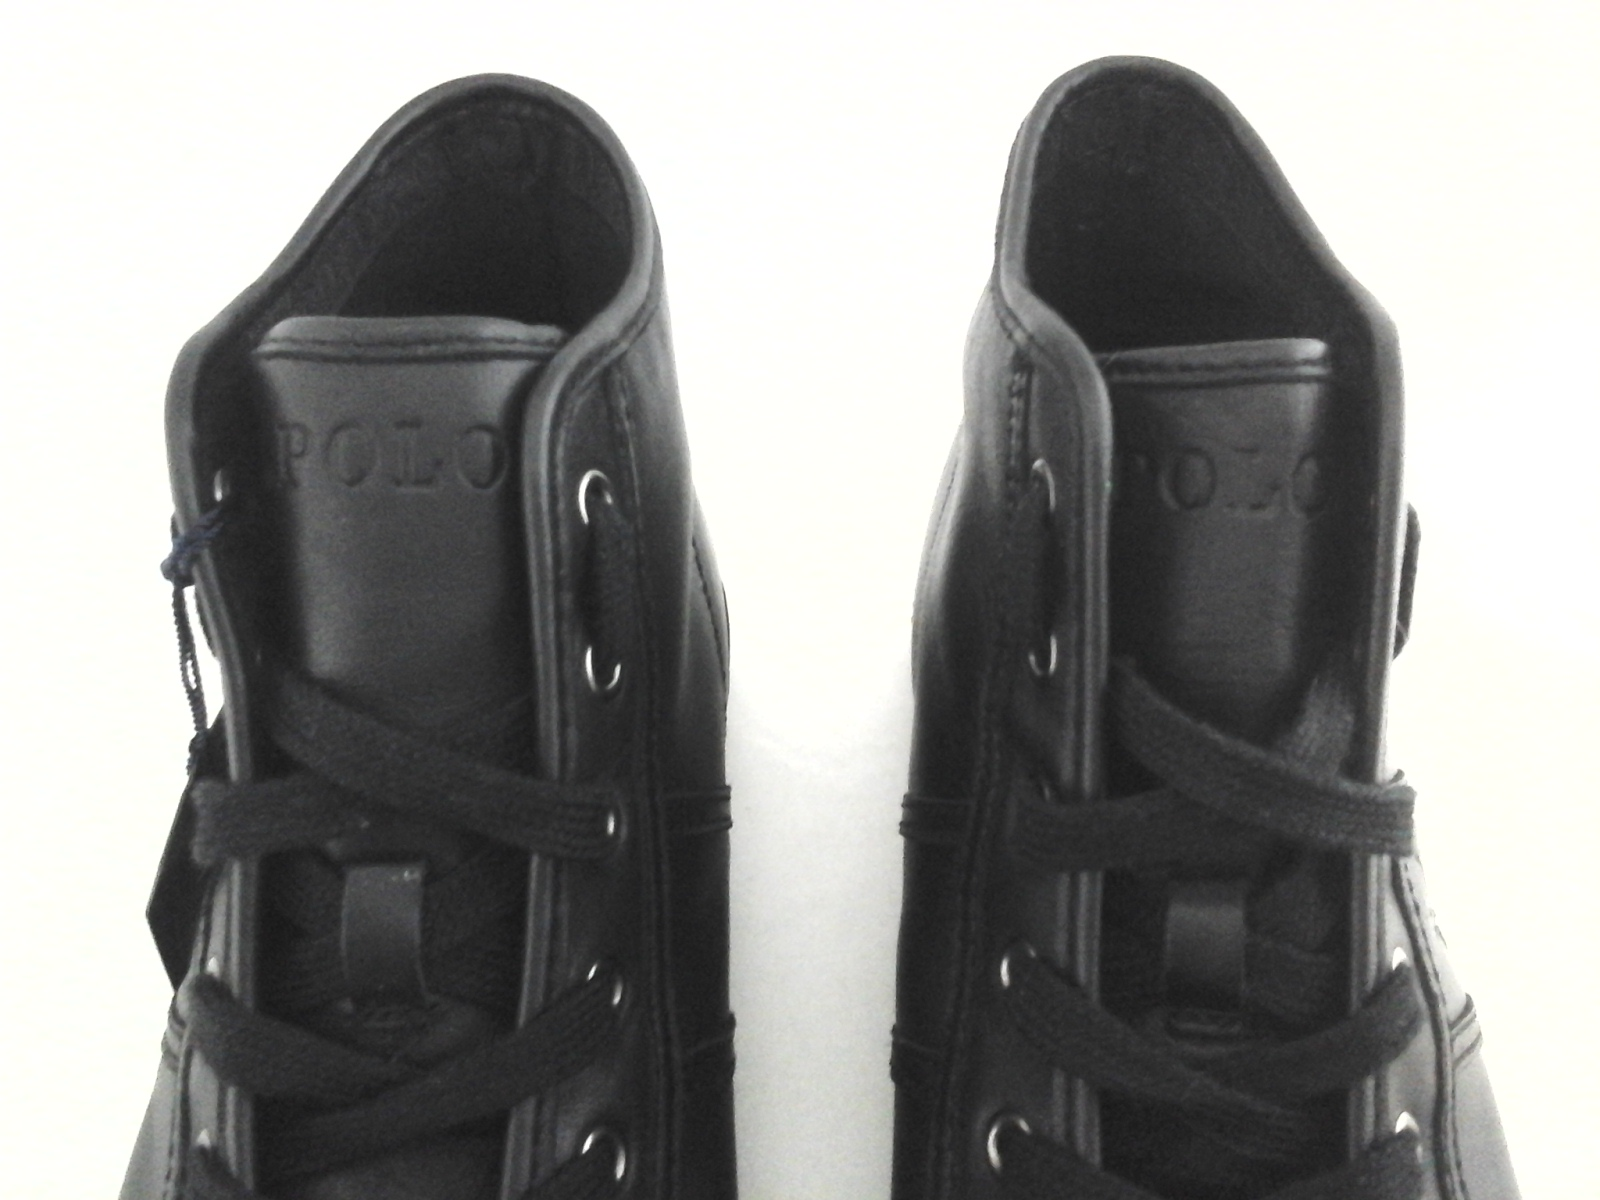 acb67caaf1 POLO RALPH LAUREN Tremayne High Top Shoes Black Nappa Leather US 12 ...